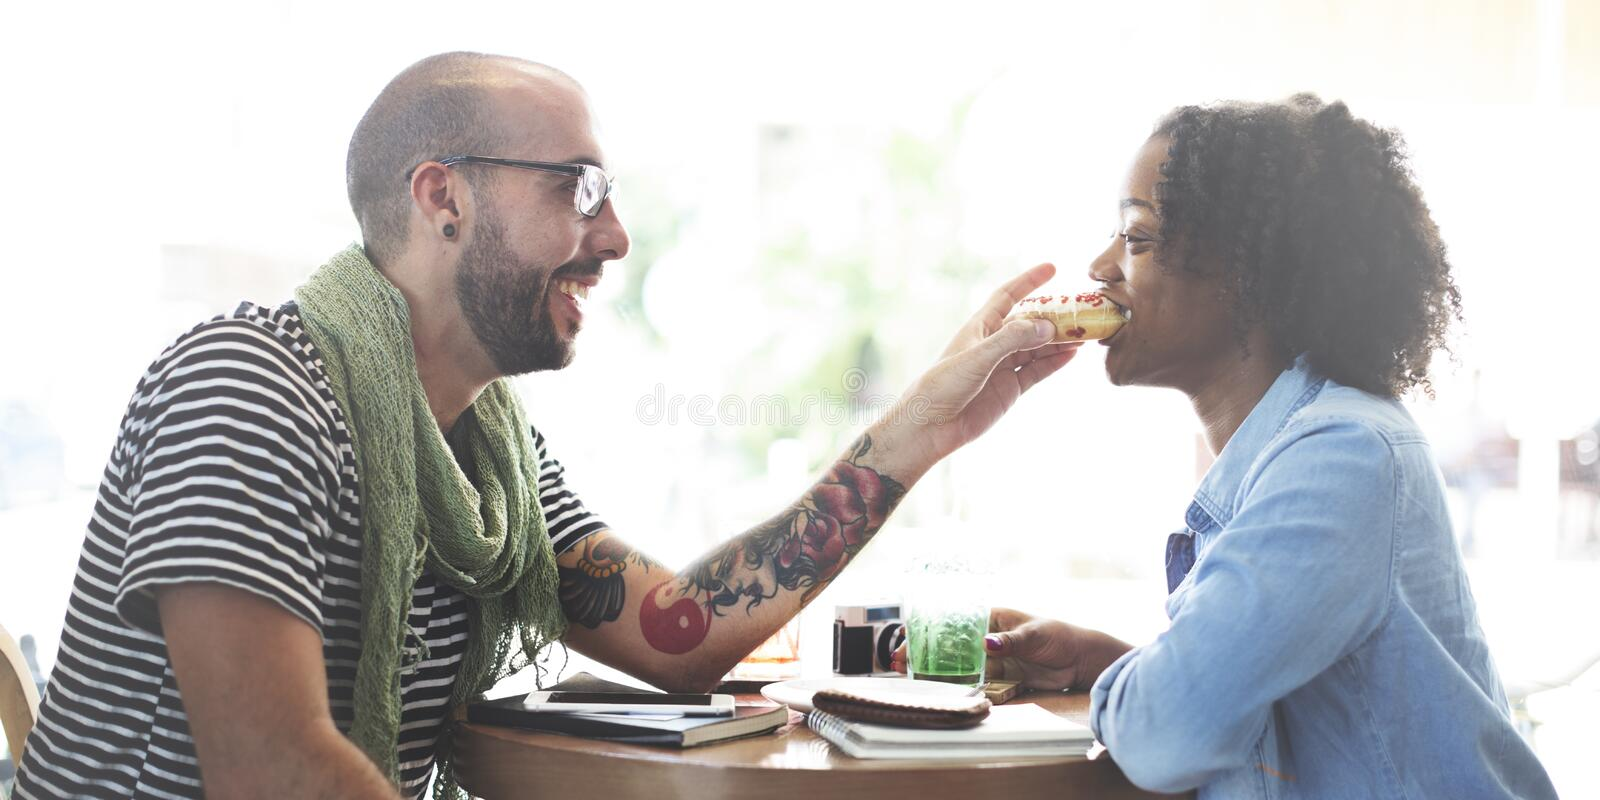 Couple Date Love passion Sweet Romance Support Concept royalty free stock image